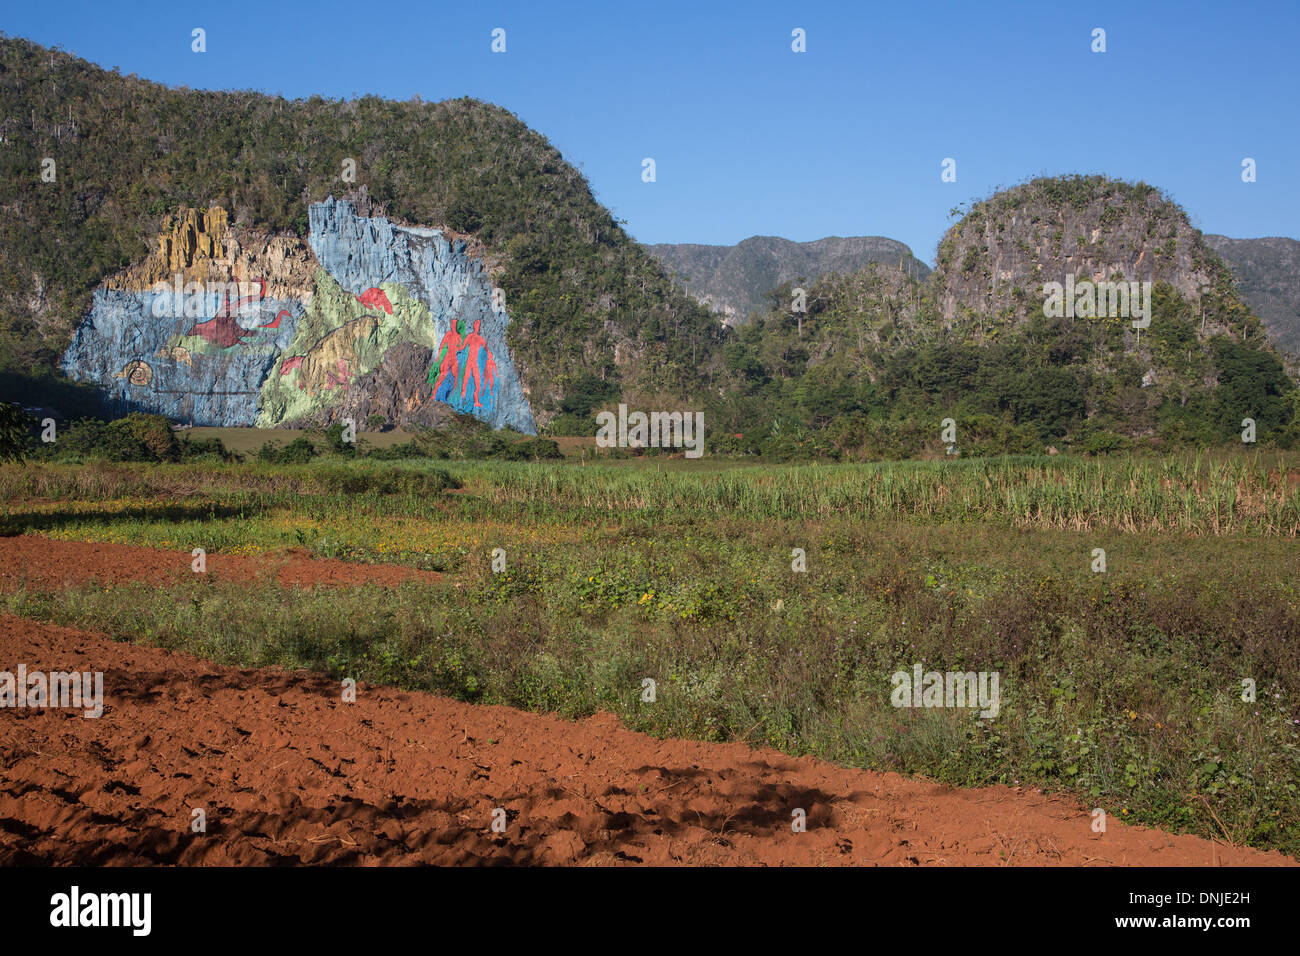 MURAL OF EVOLUTION, PREHISTORIC WALL (MURAL DE LA PREHISTORIA) COMMISSIONED BY FIDEL CASTRO IN 1961, PAINTING ON A SLOPE OF A MOGOTE (MOUNTAINOUS LIMESTONE HILLOCK), VINALES VALLEY, LISTED AS A WORLD HERITAGE SITE BY UNESCO, CUBA, THE CARIBBEAN - Stock Image